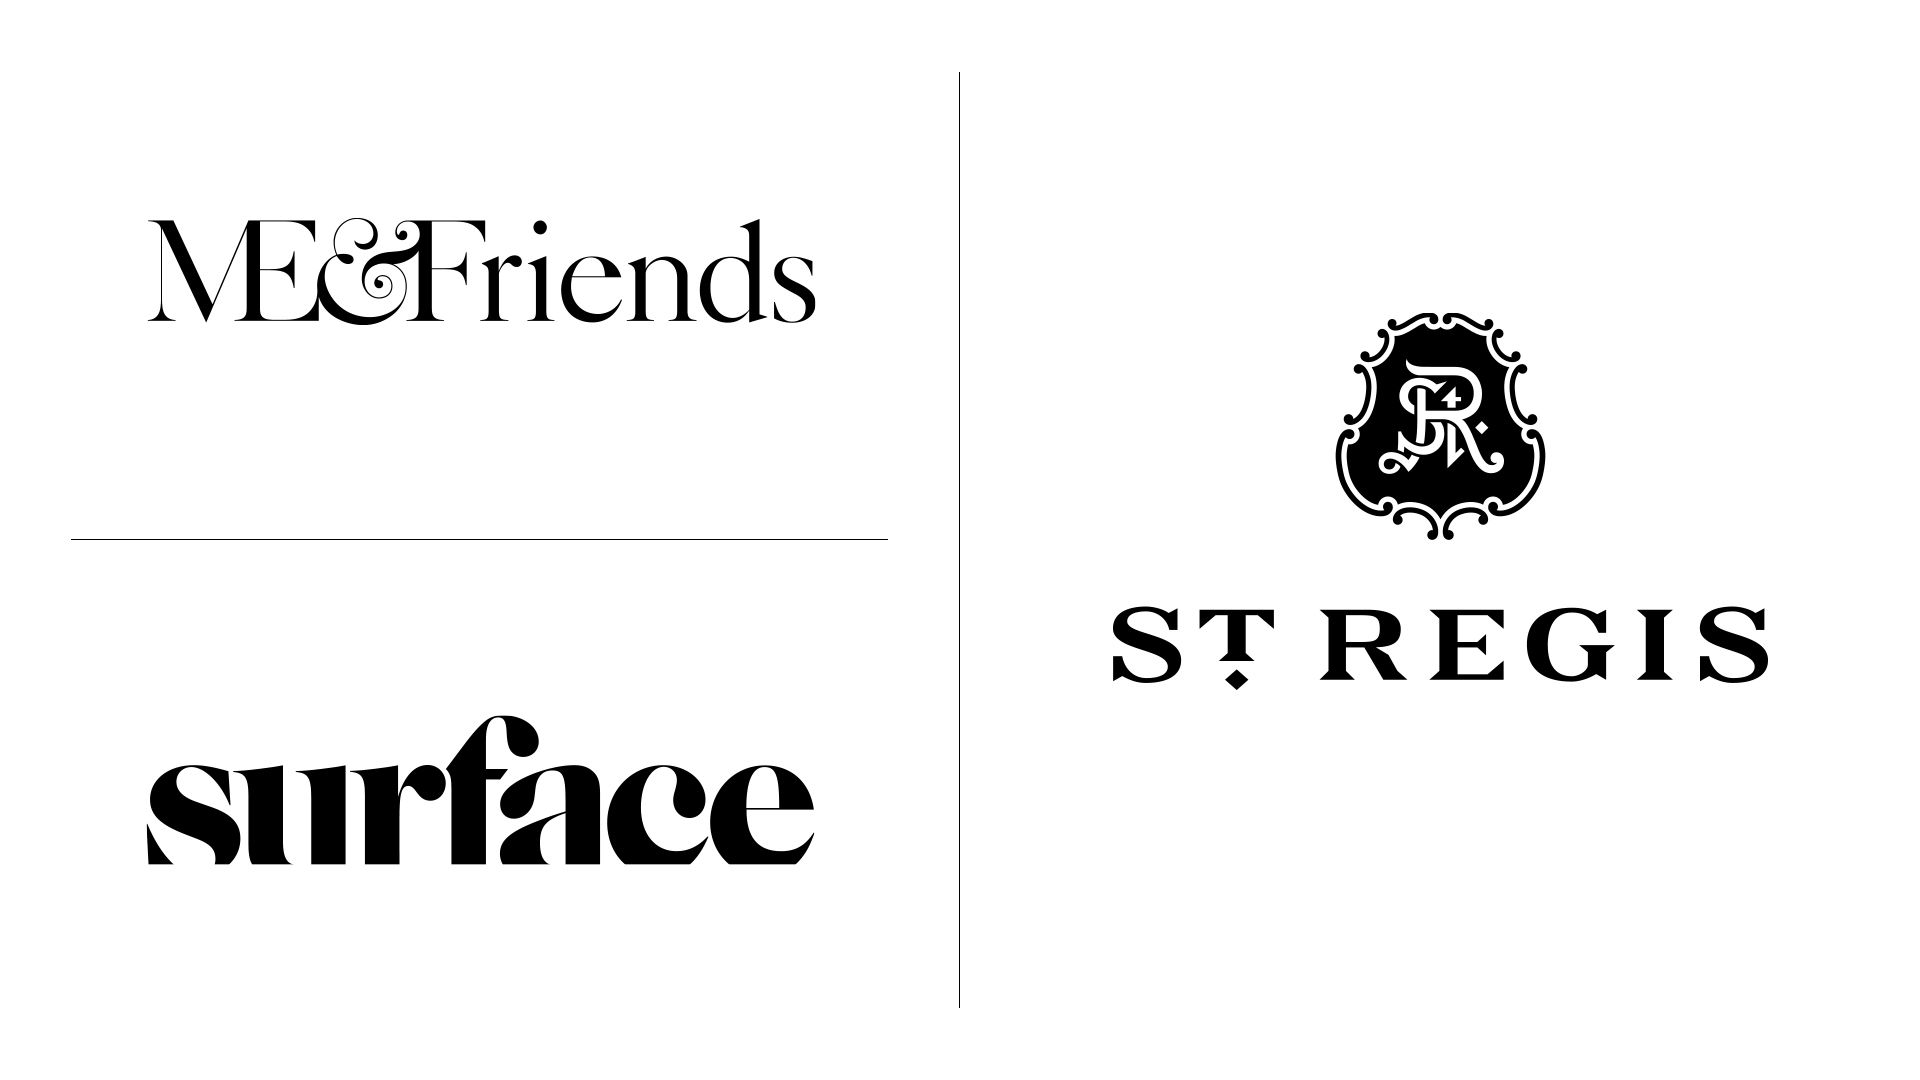 logos designed by Jd&co.